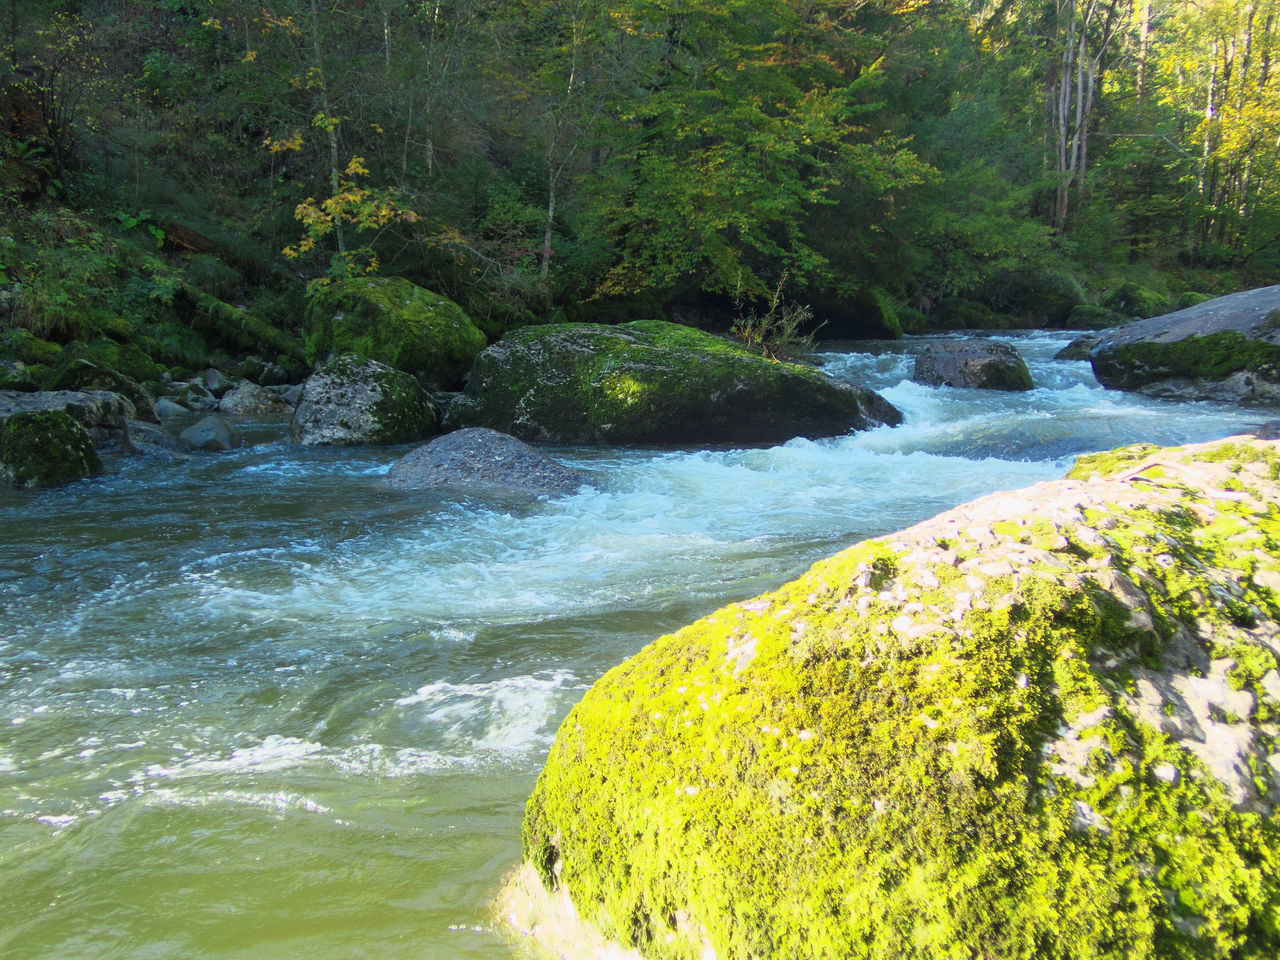 RIVER FLOWING AMIDST ROCKS IN FOREST